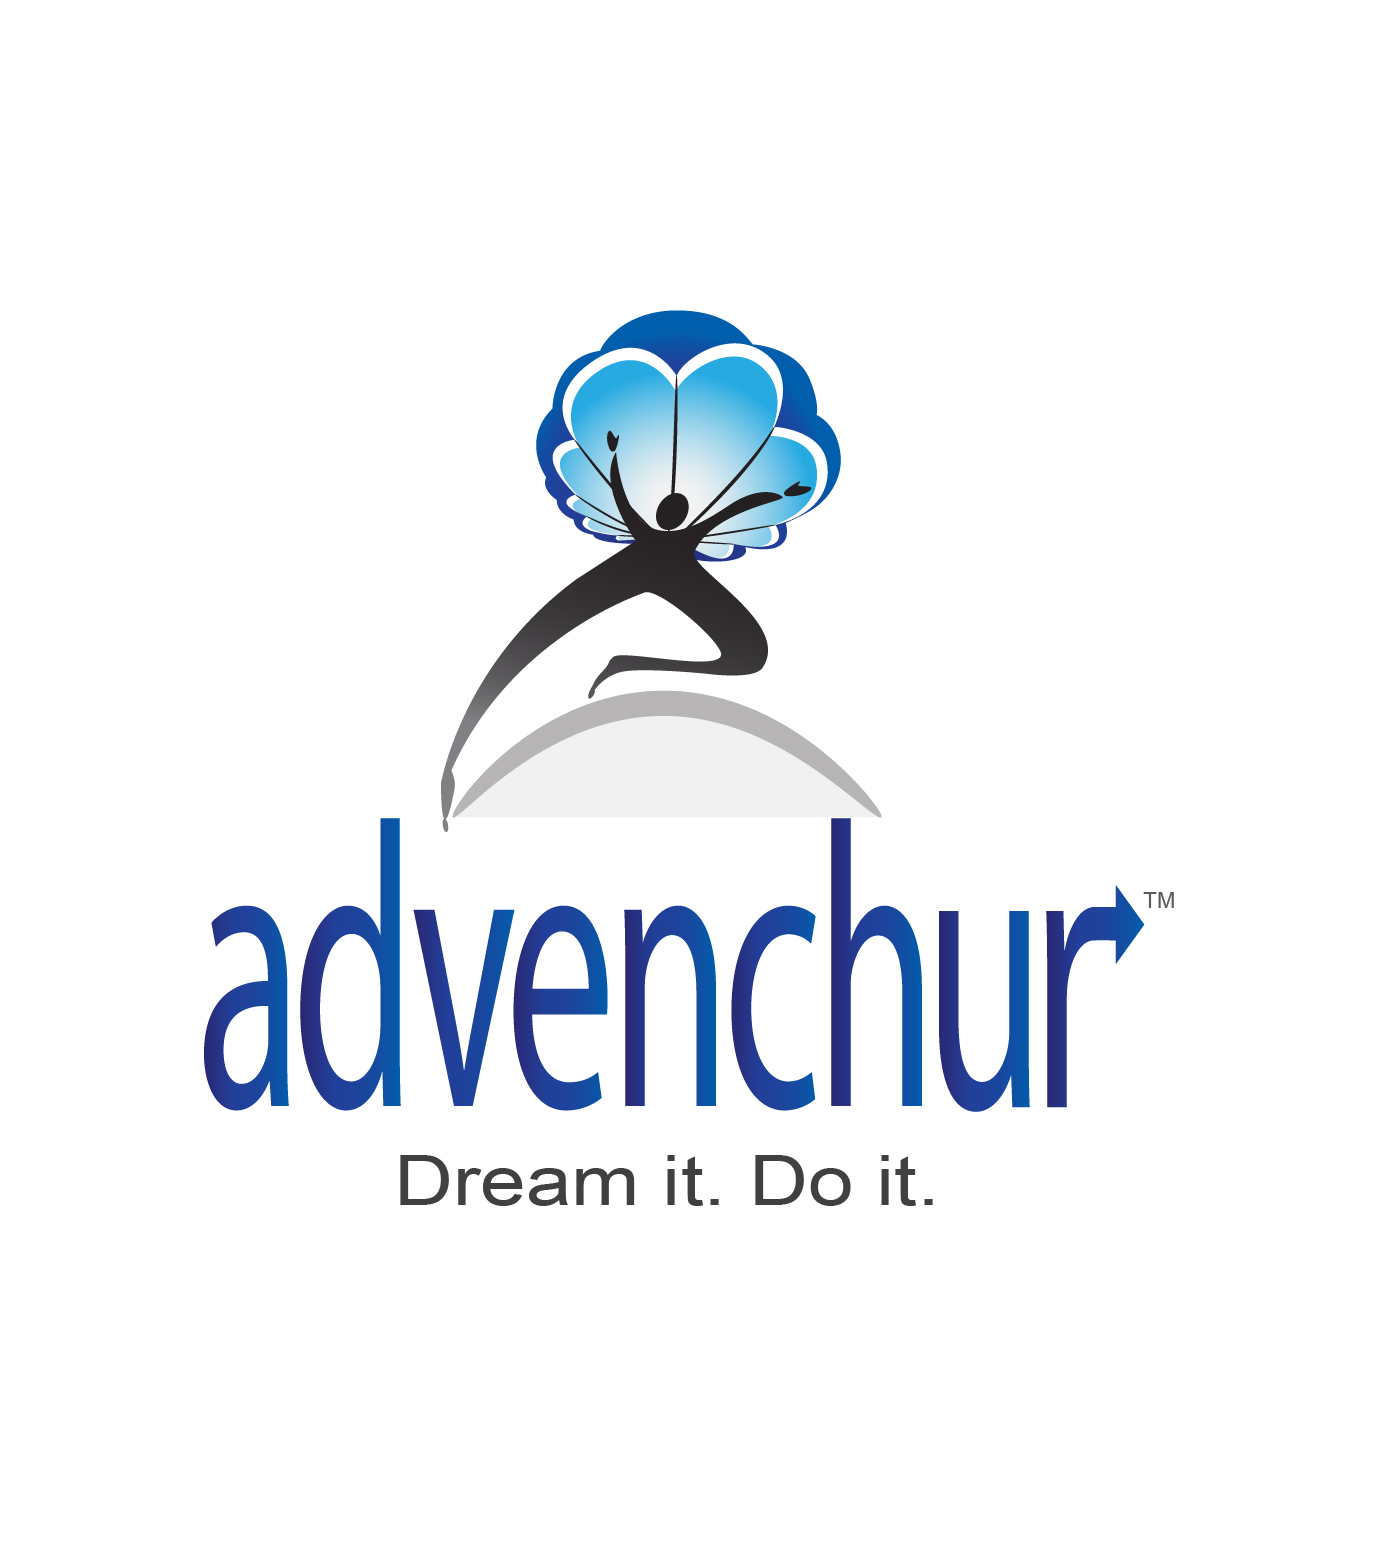 Logo Design by kowreck - Entry No. 27 in the Logo Design Contest Logo design for fun and exciting experience/adventure business!.